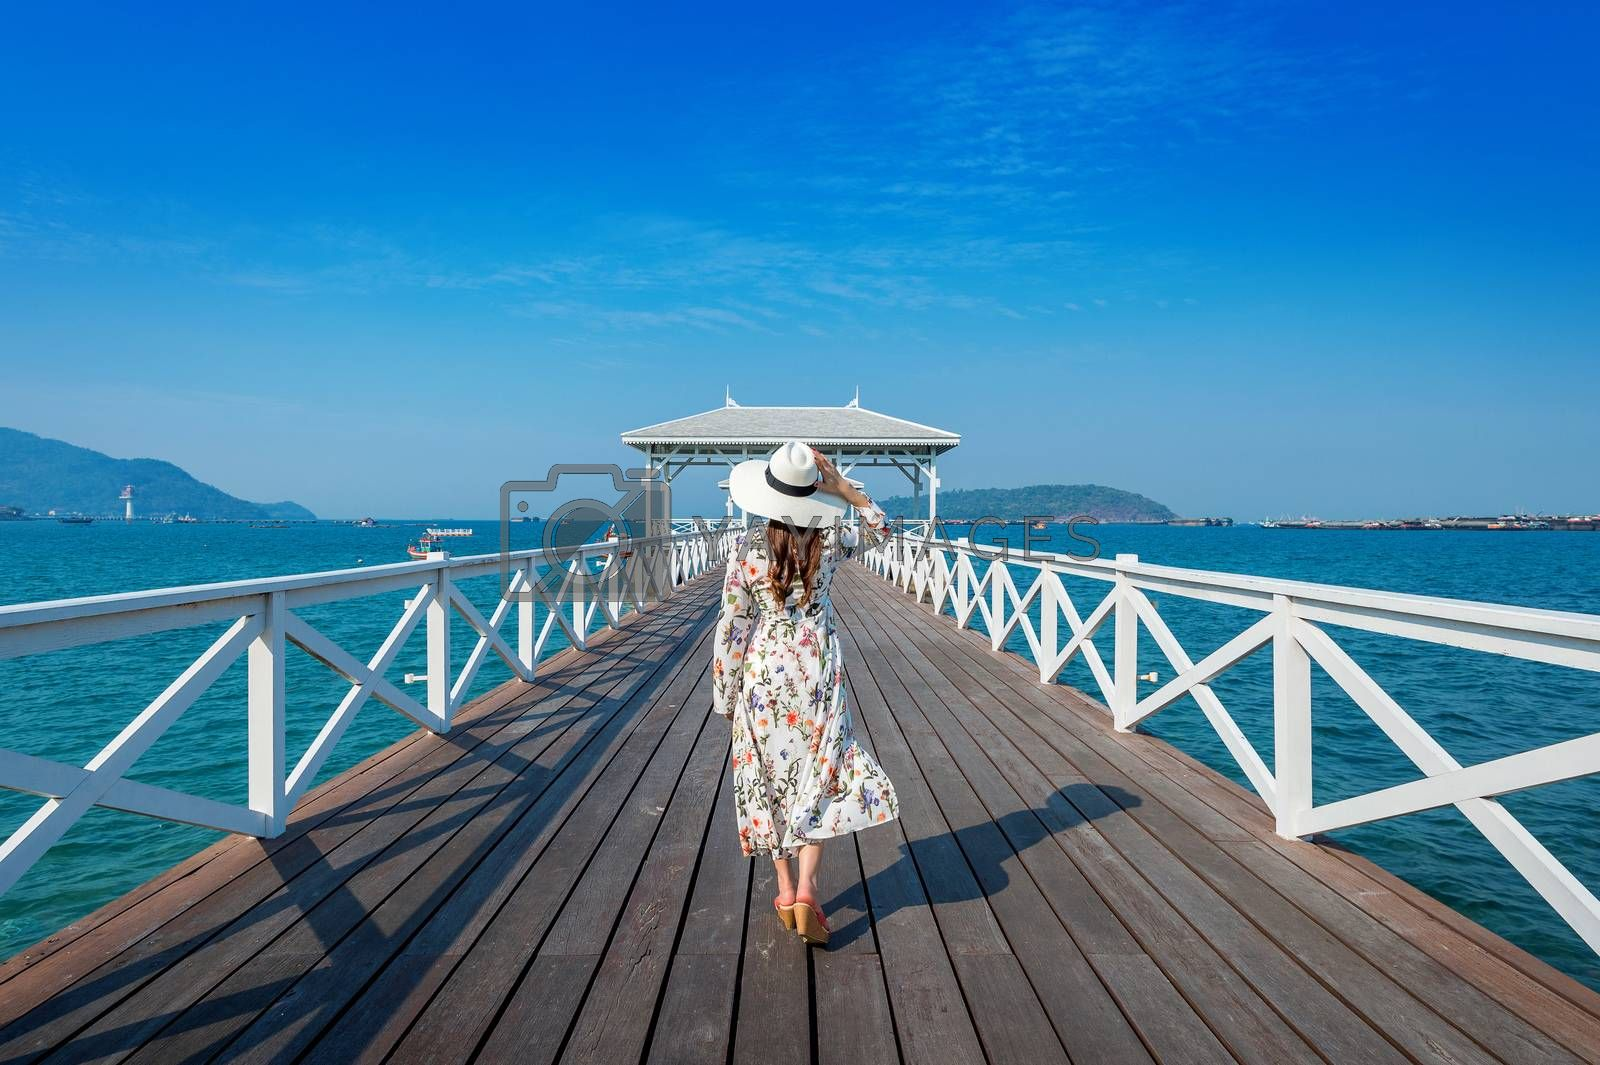 Young woman walking on wooden bridge in Si chang island, Thailand.